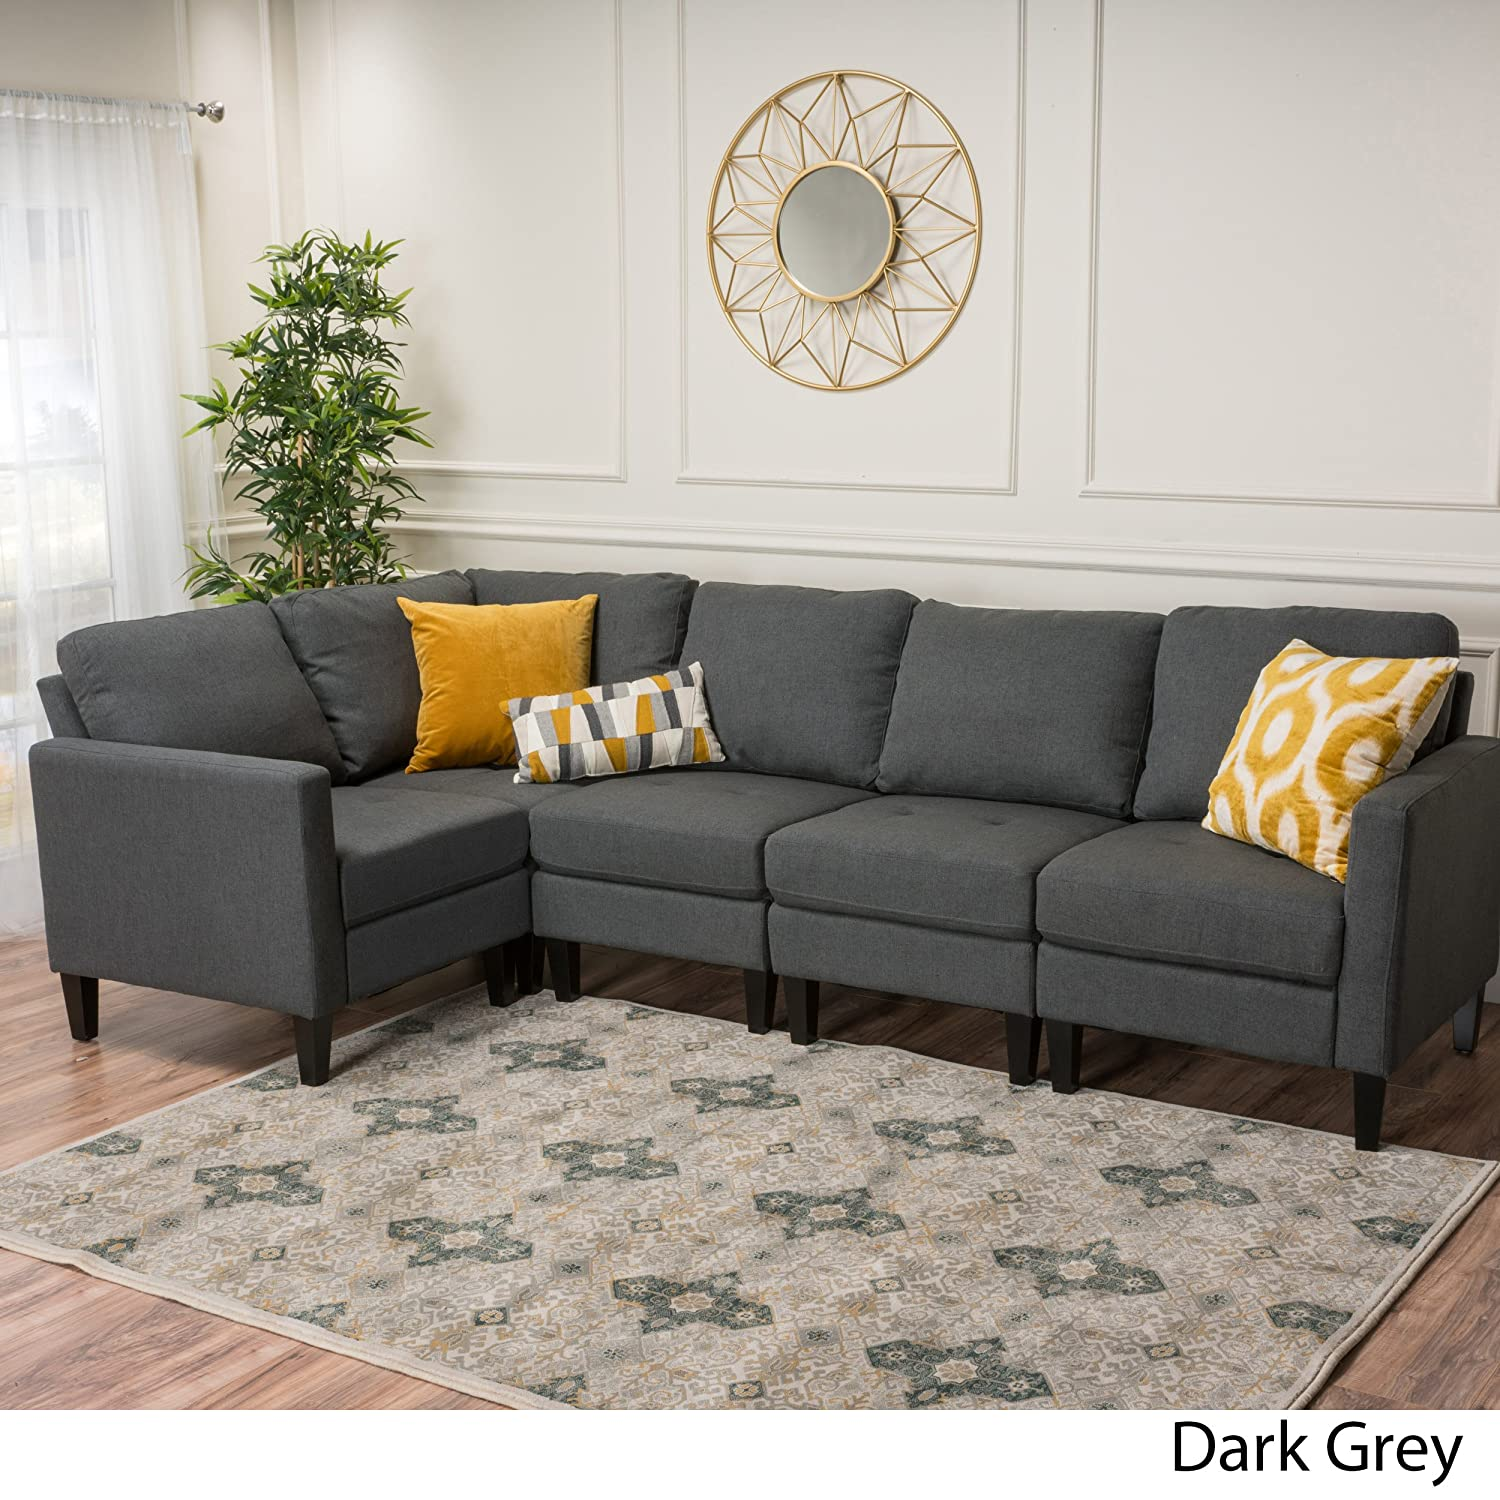 Amazon com carolina dark grey fabric sectional couch kitchen dining